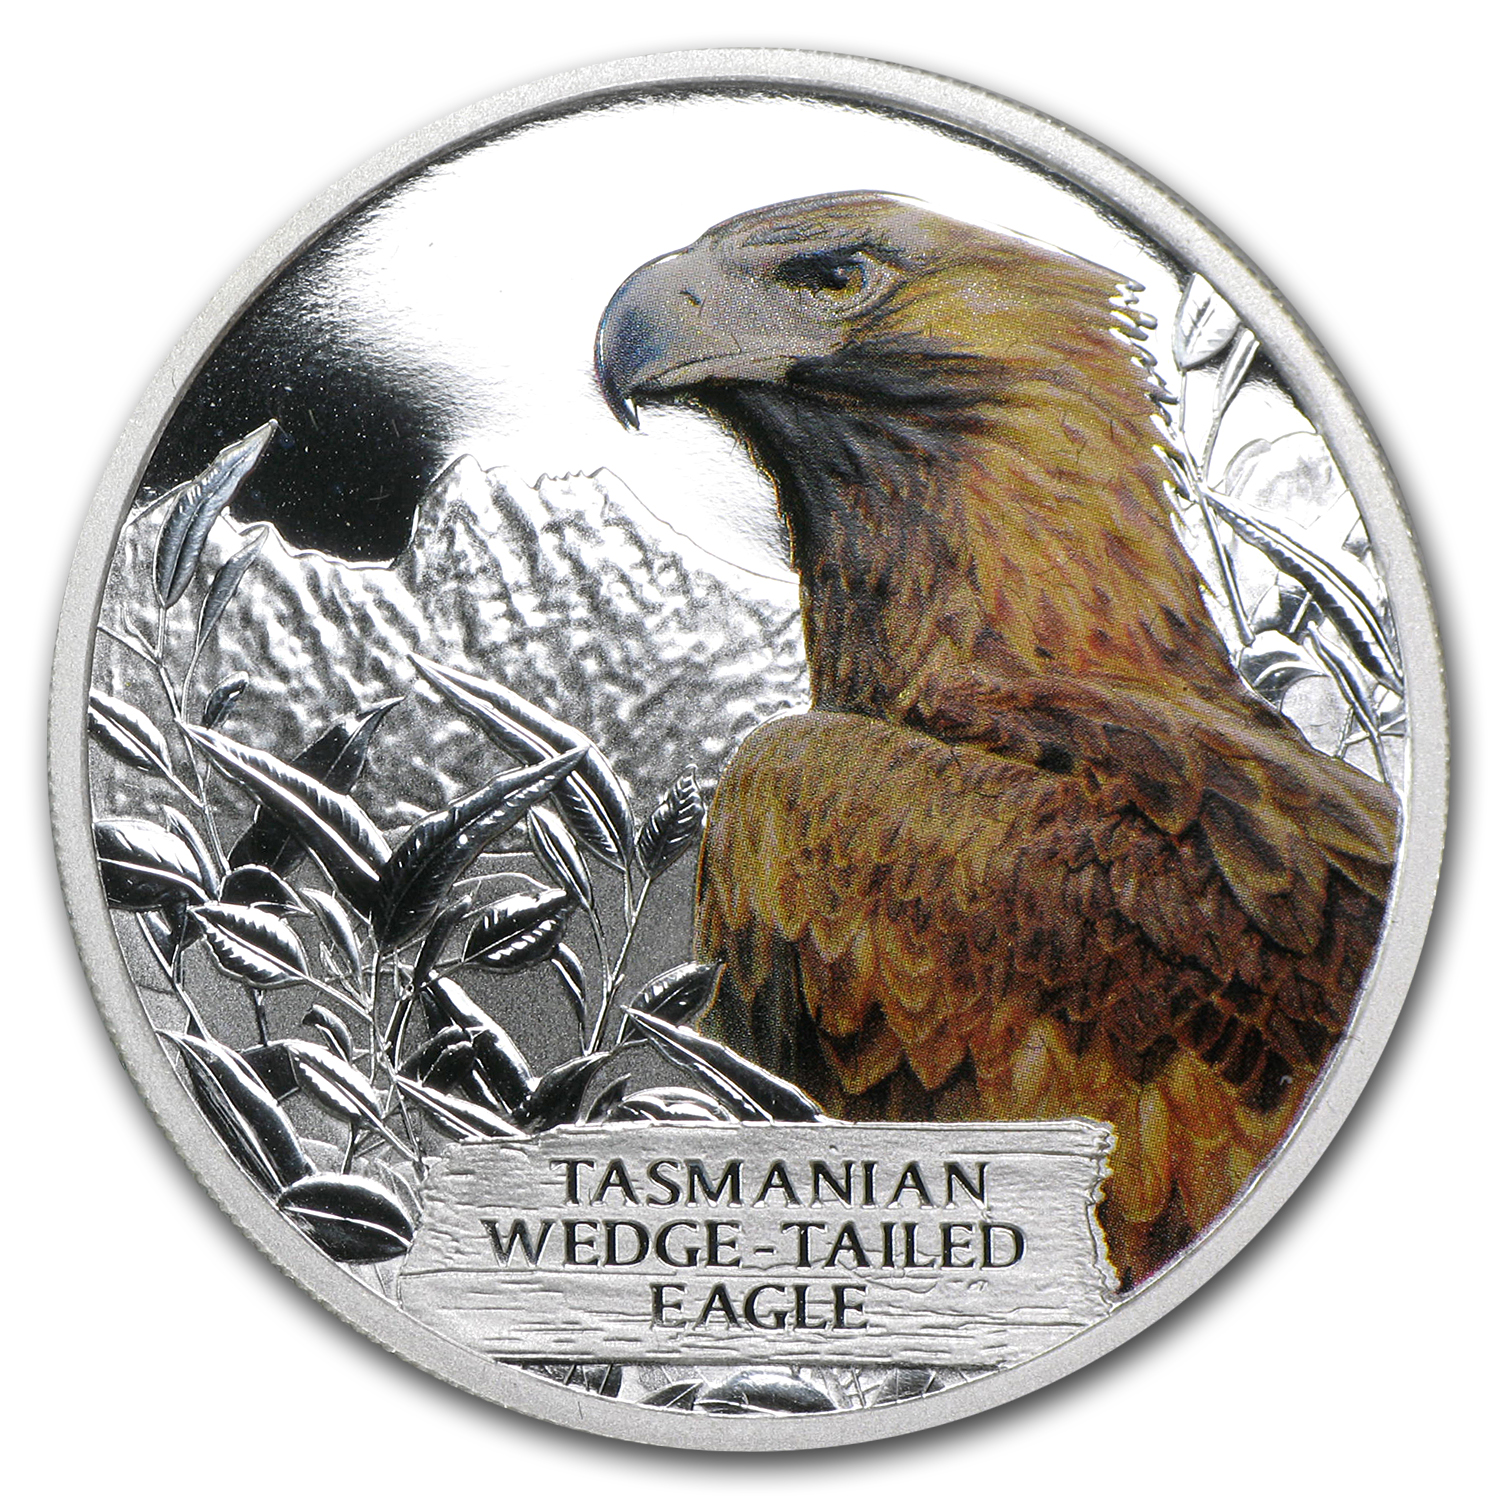 2012 Tuvalu 1 oz Silver Wedge-Tailed Eagle Proof (Spotted)